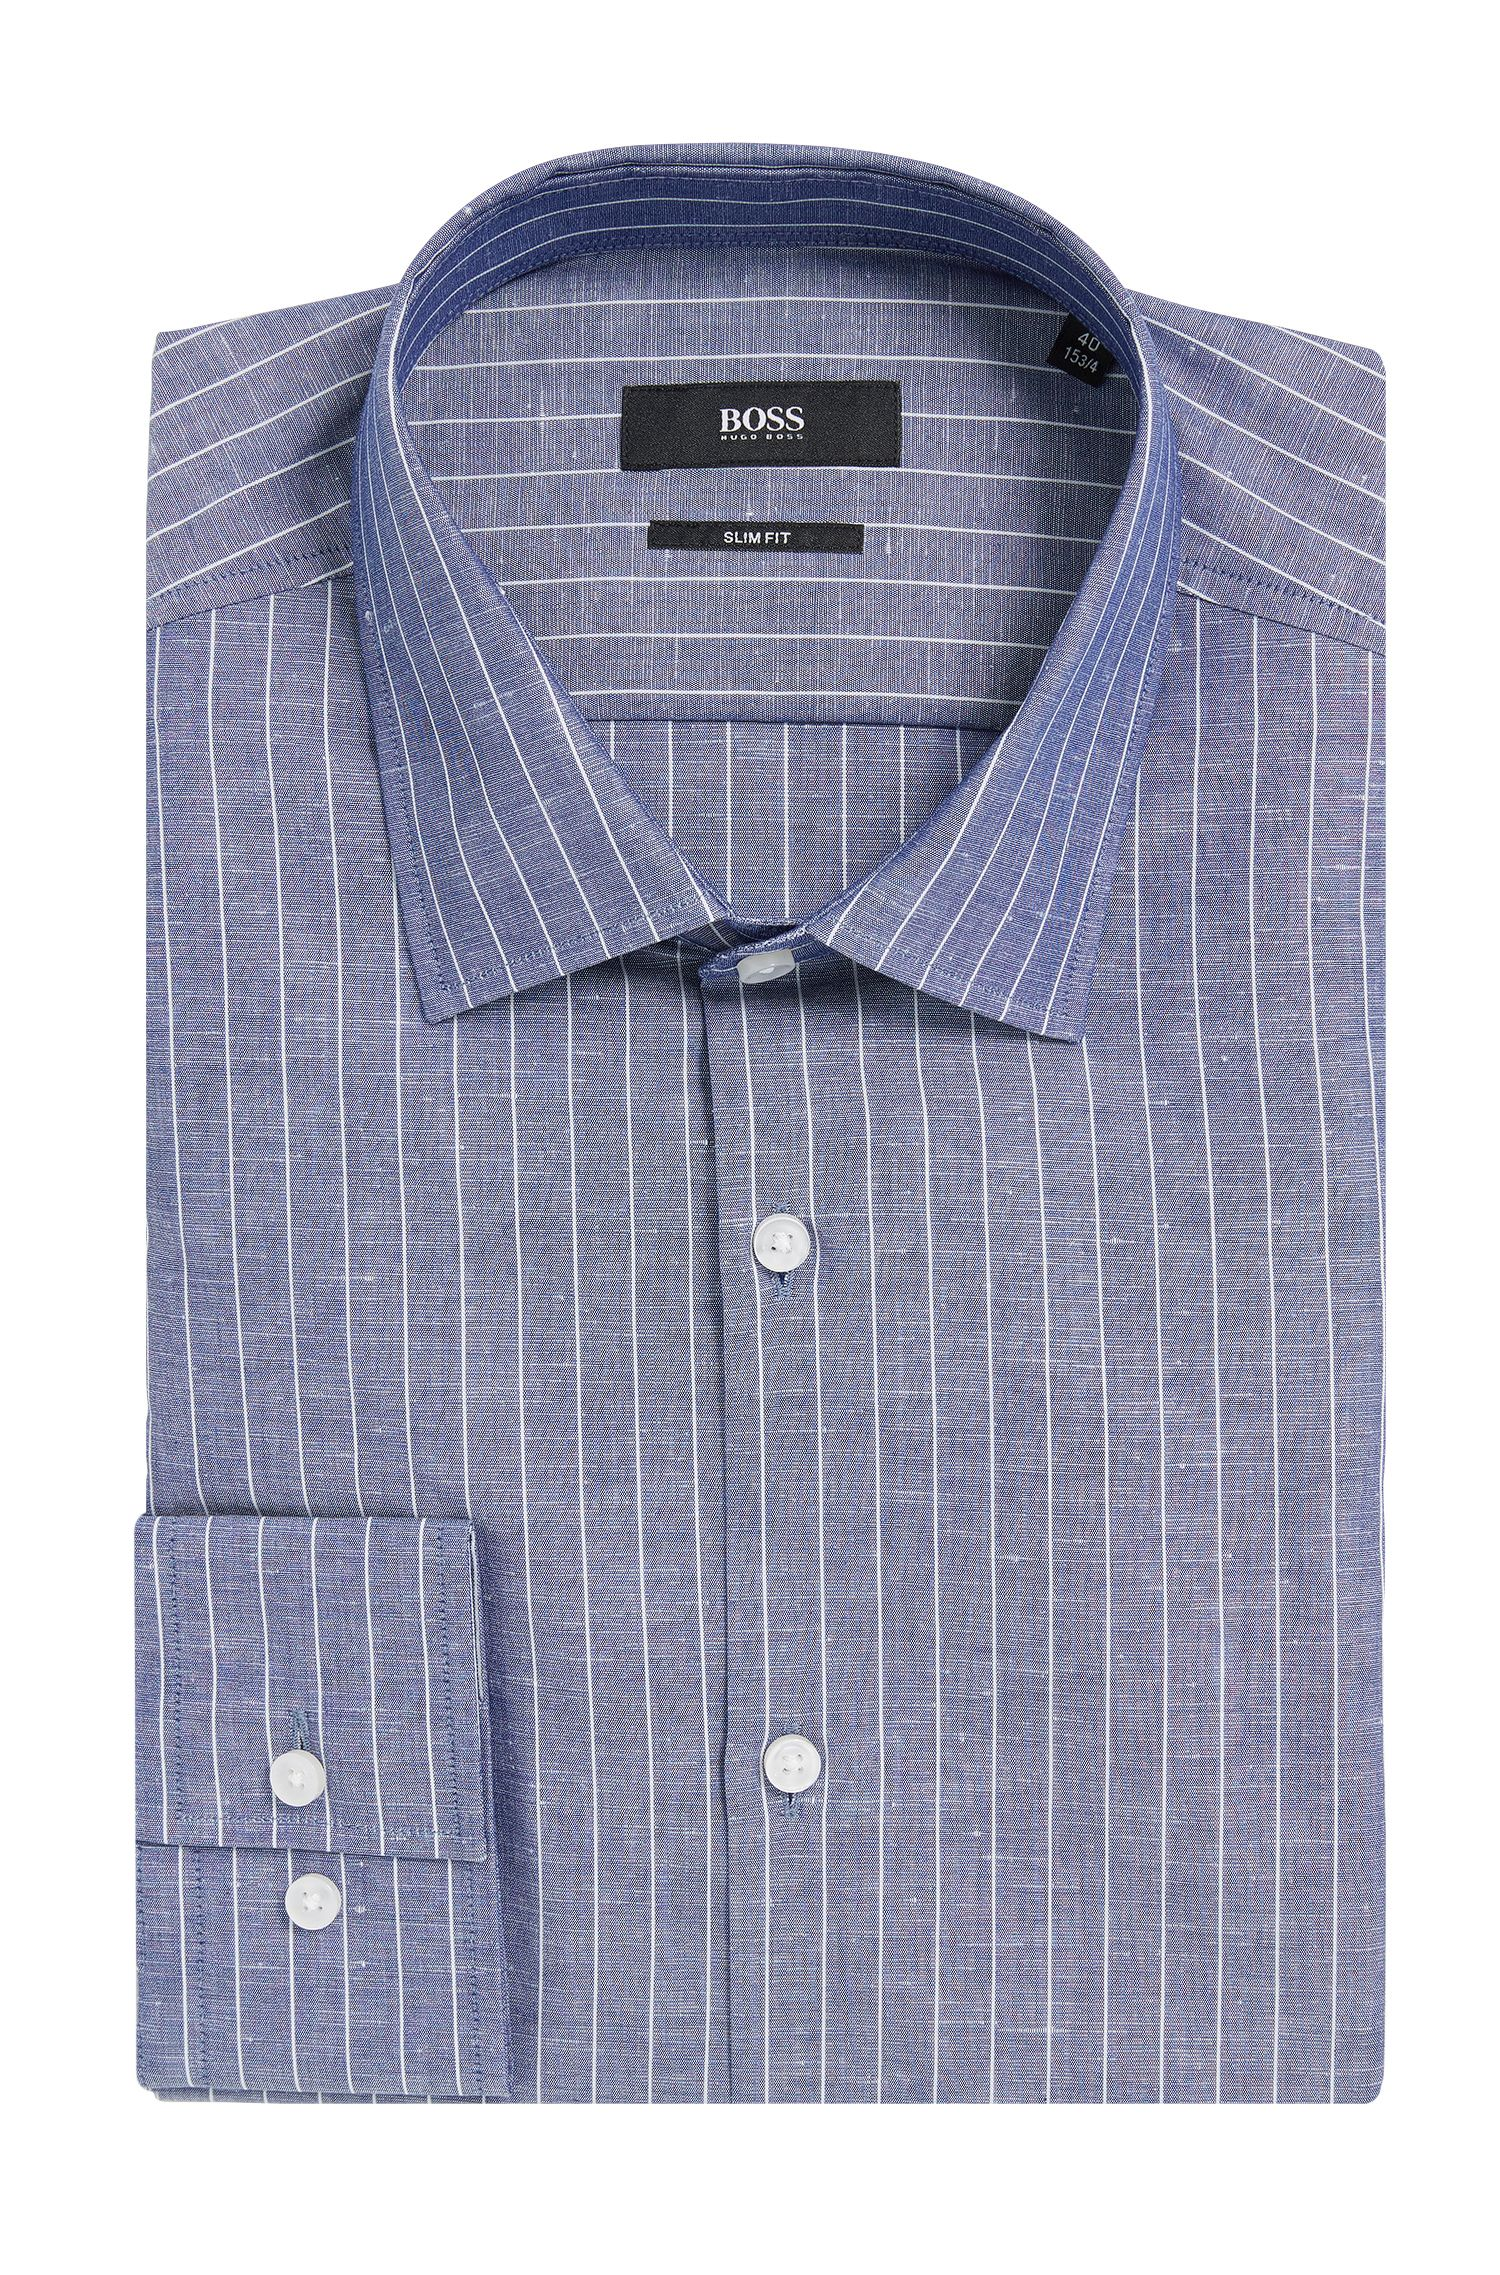 Pinstripe Italian Cotton Linen Dress Shirt, Slim Fit | Jenno